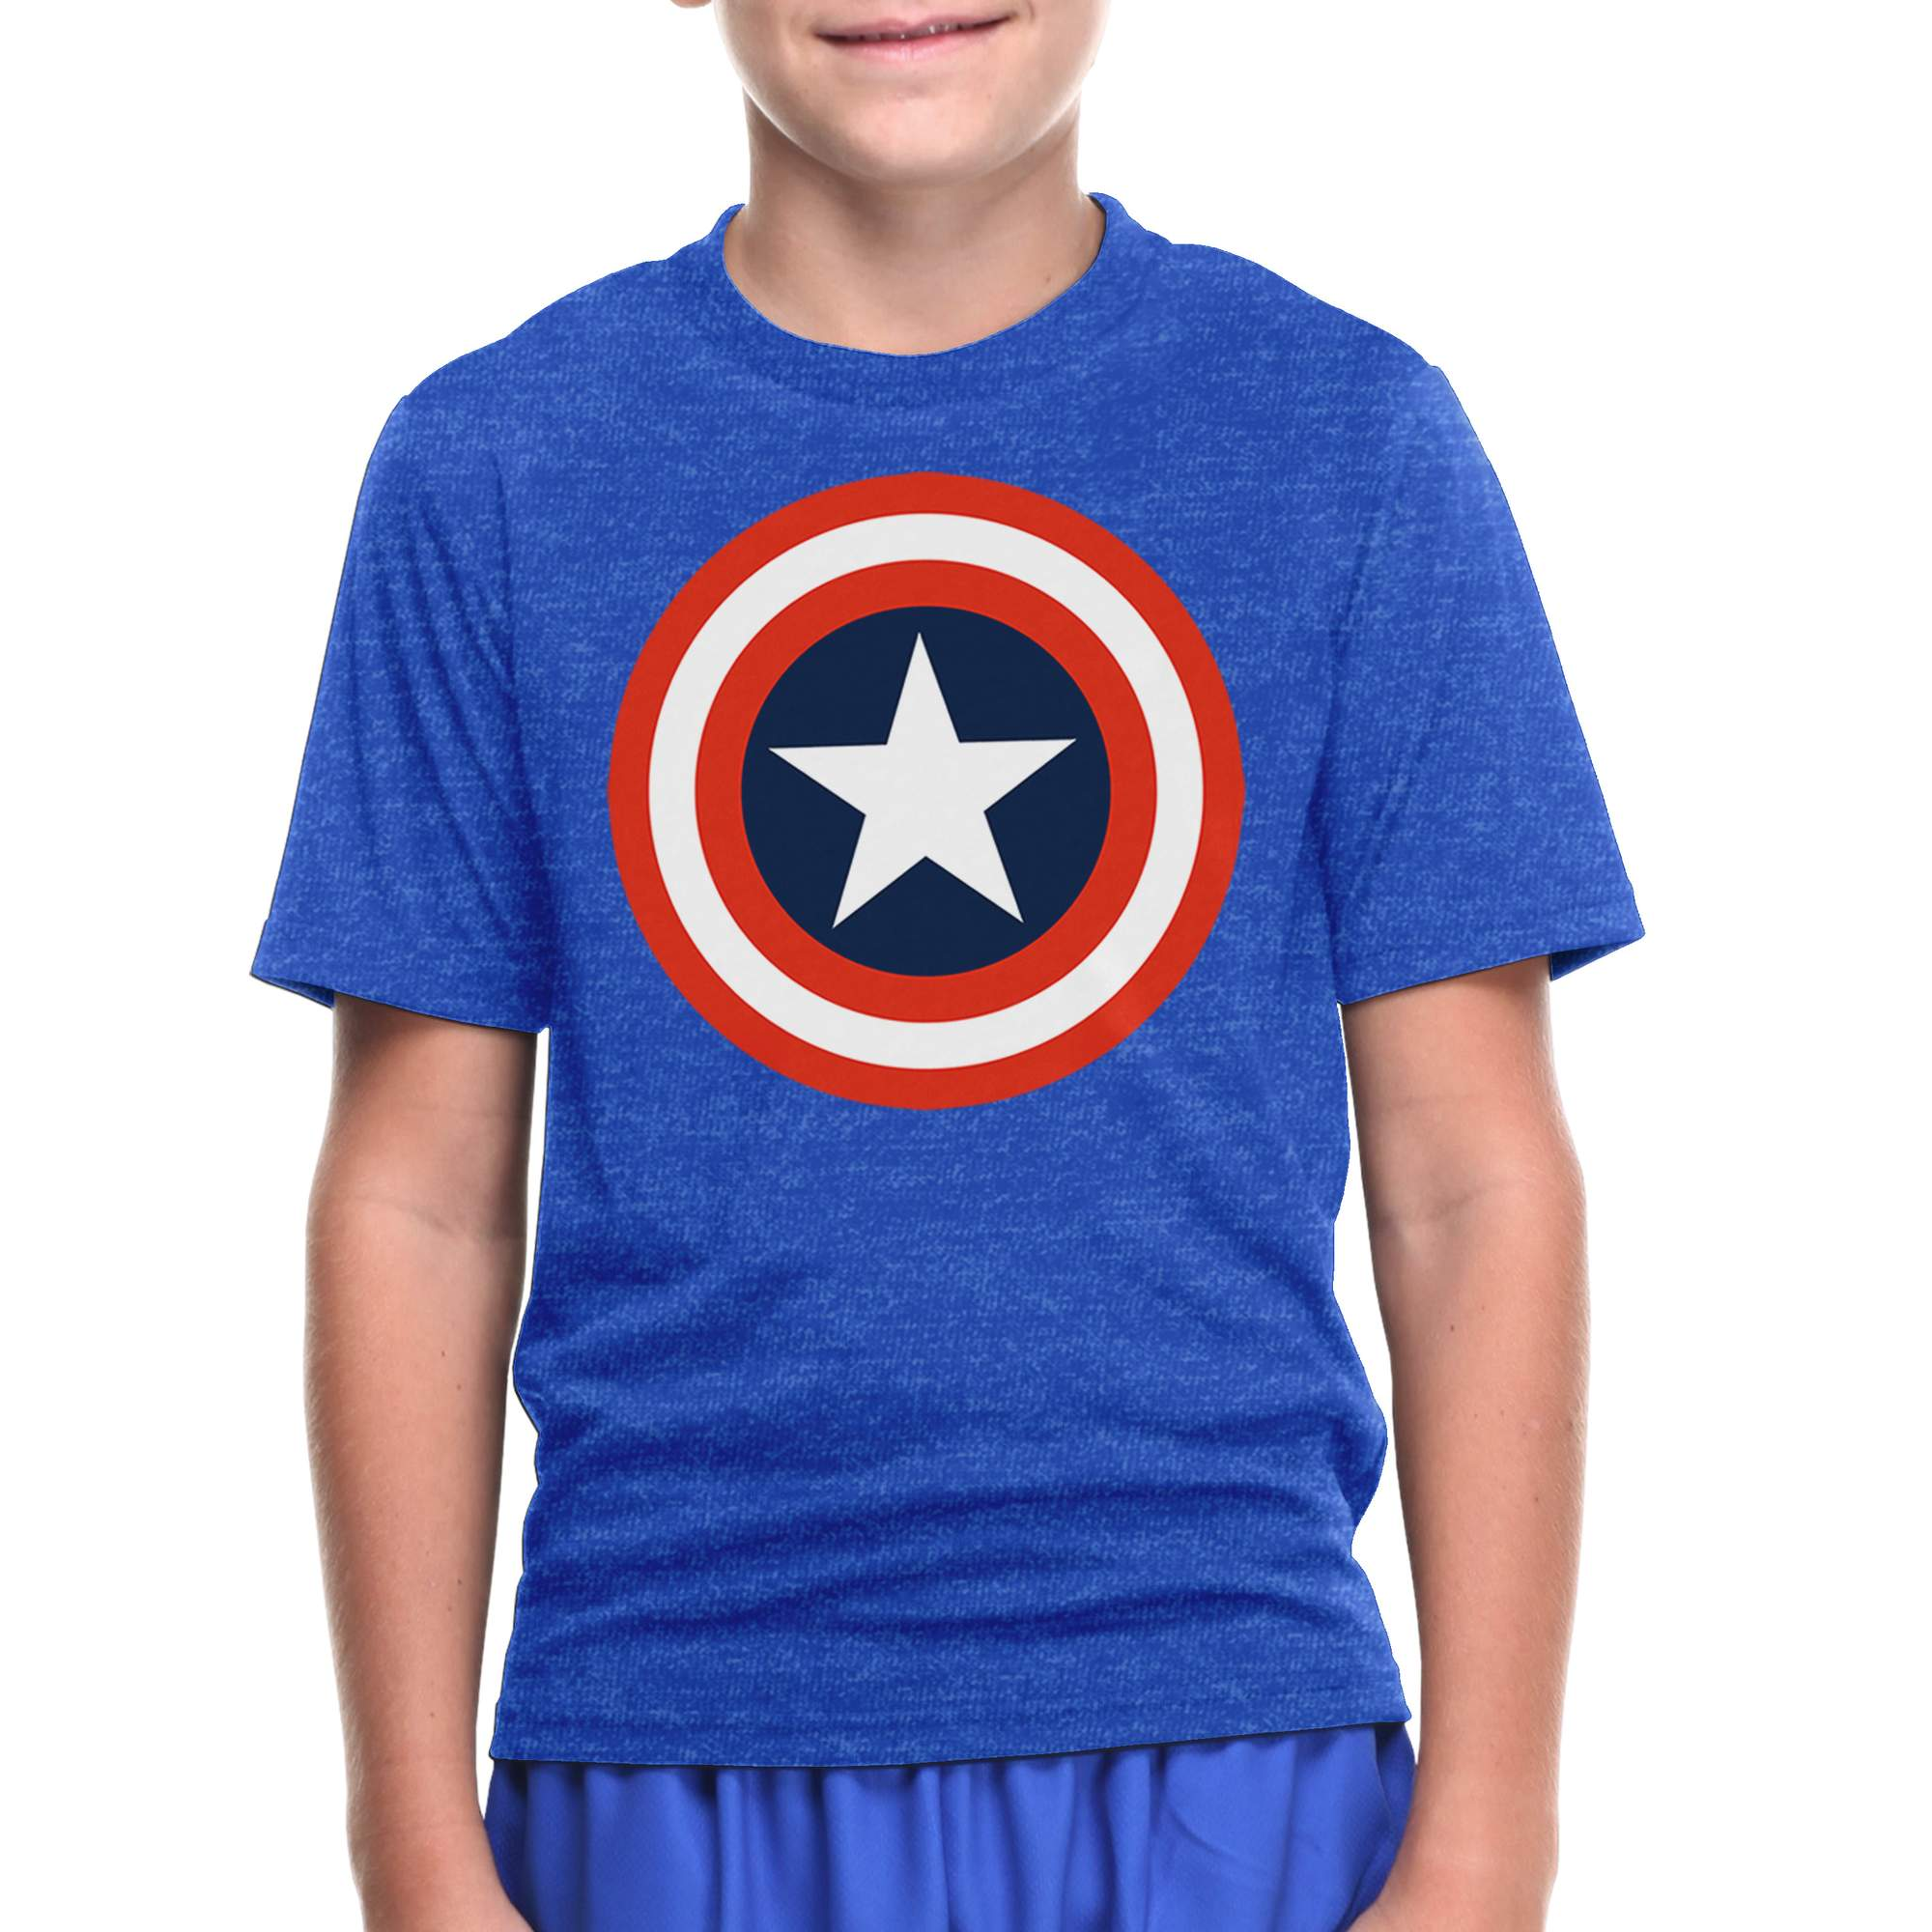 Marevl Captain America Logo Boys' Blue Short Sleeve Graphic Tee